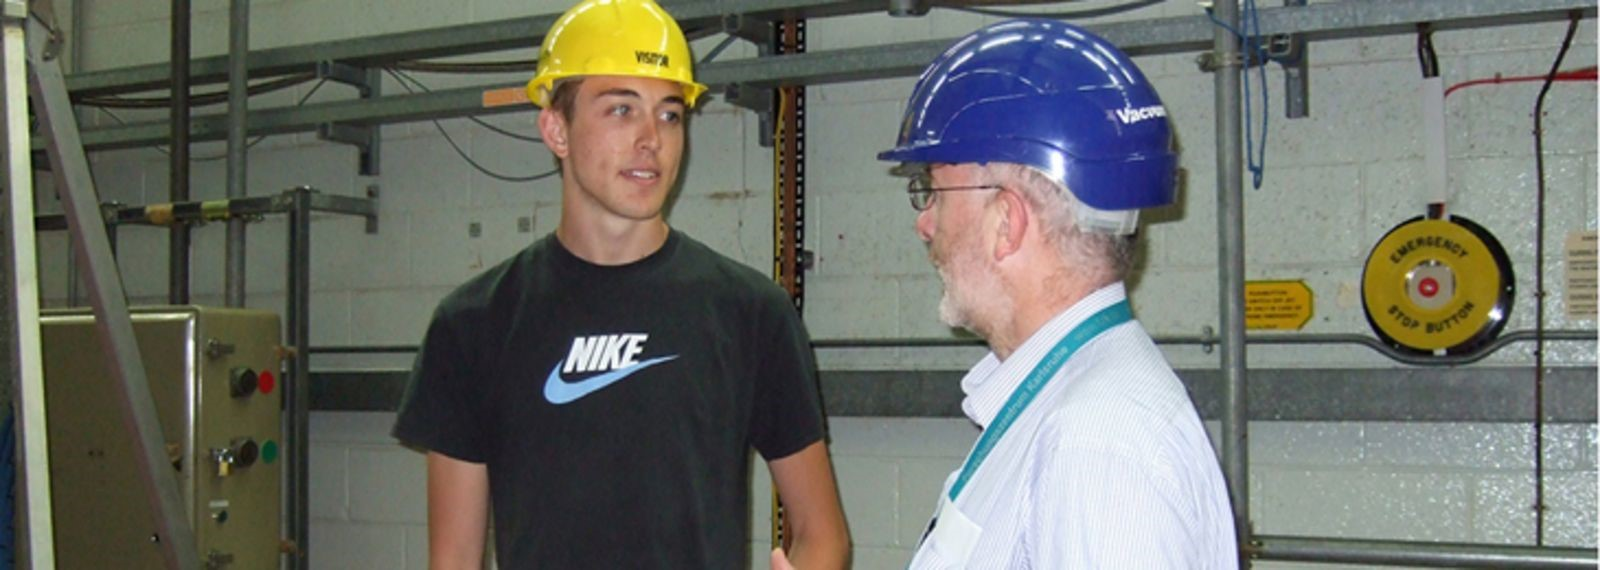 At the JET Fusion Experiment in Culham England 2010